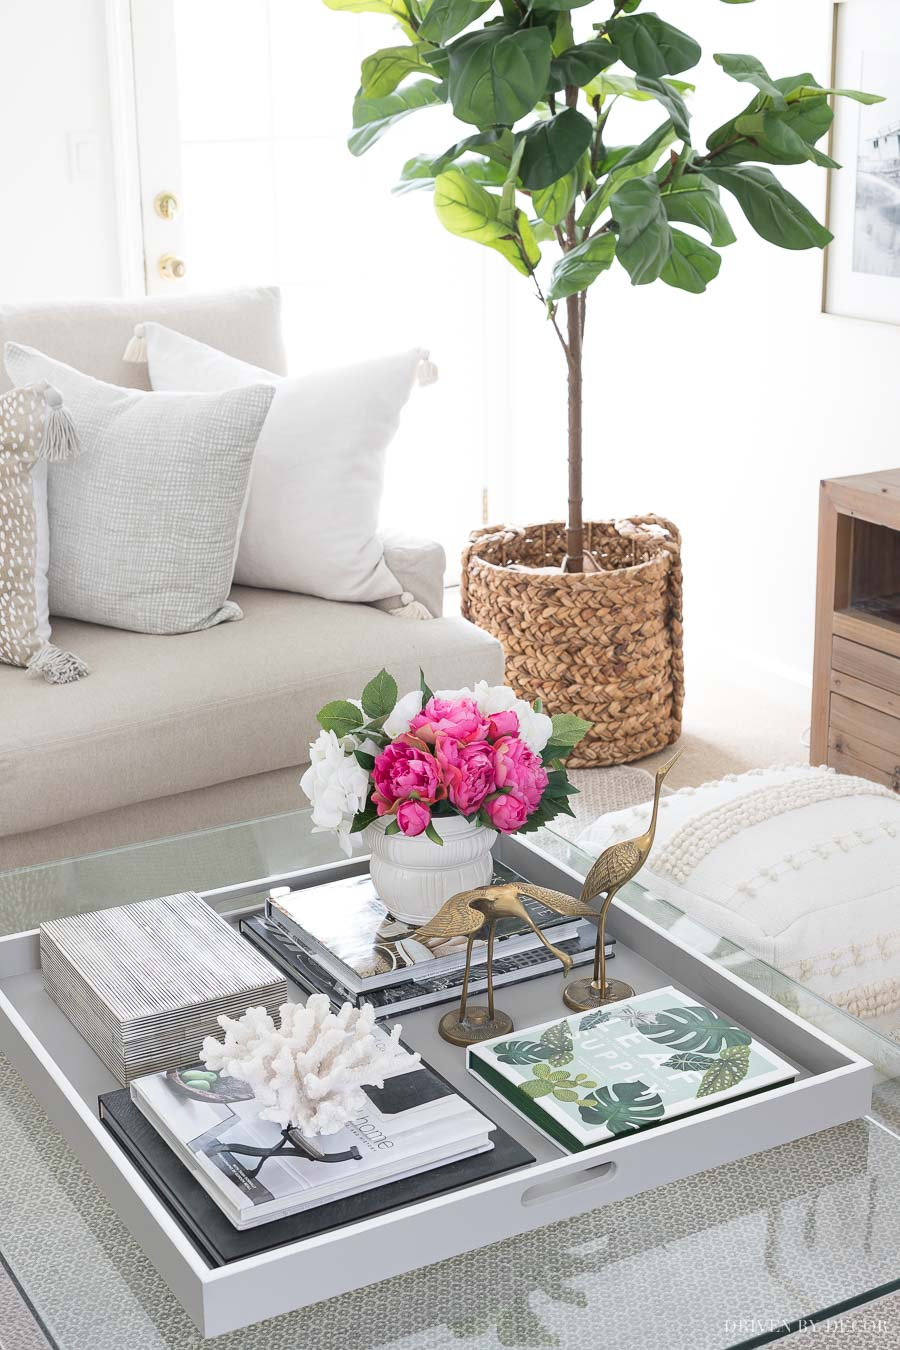 Coffee Table Decor: Ideas & Inspiration | Driven by Decor